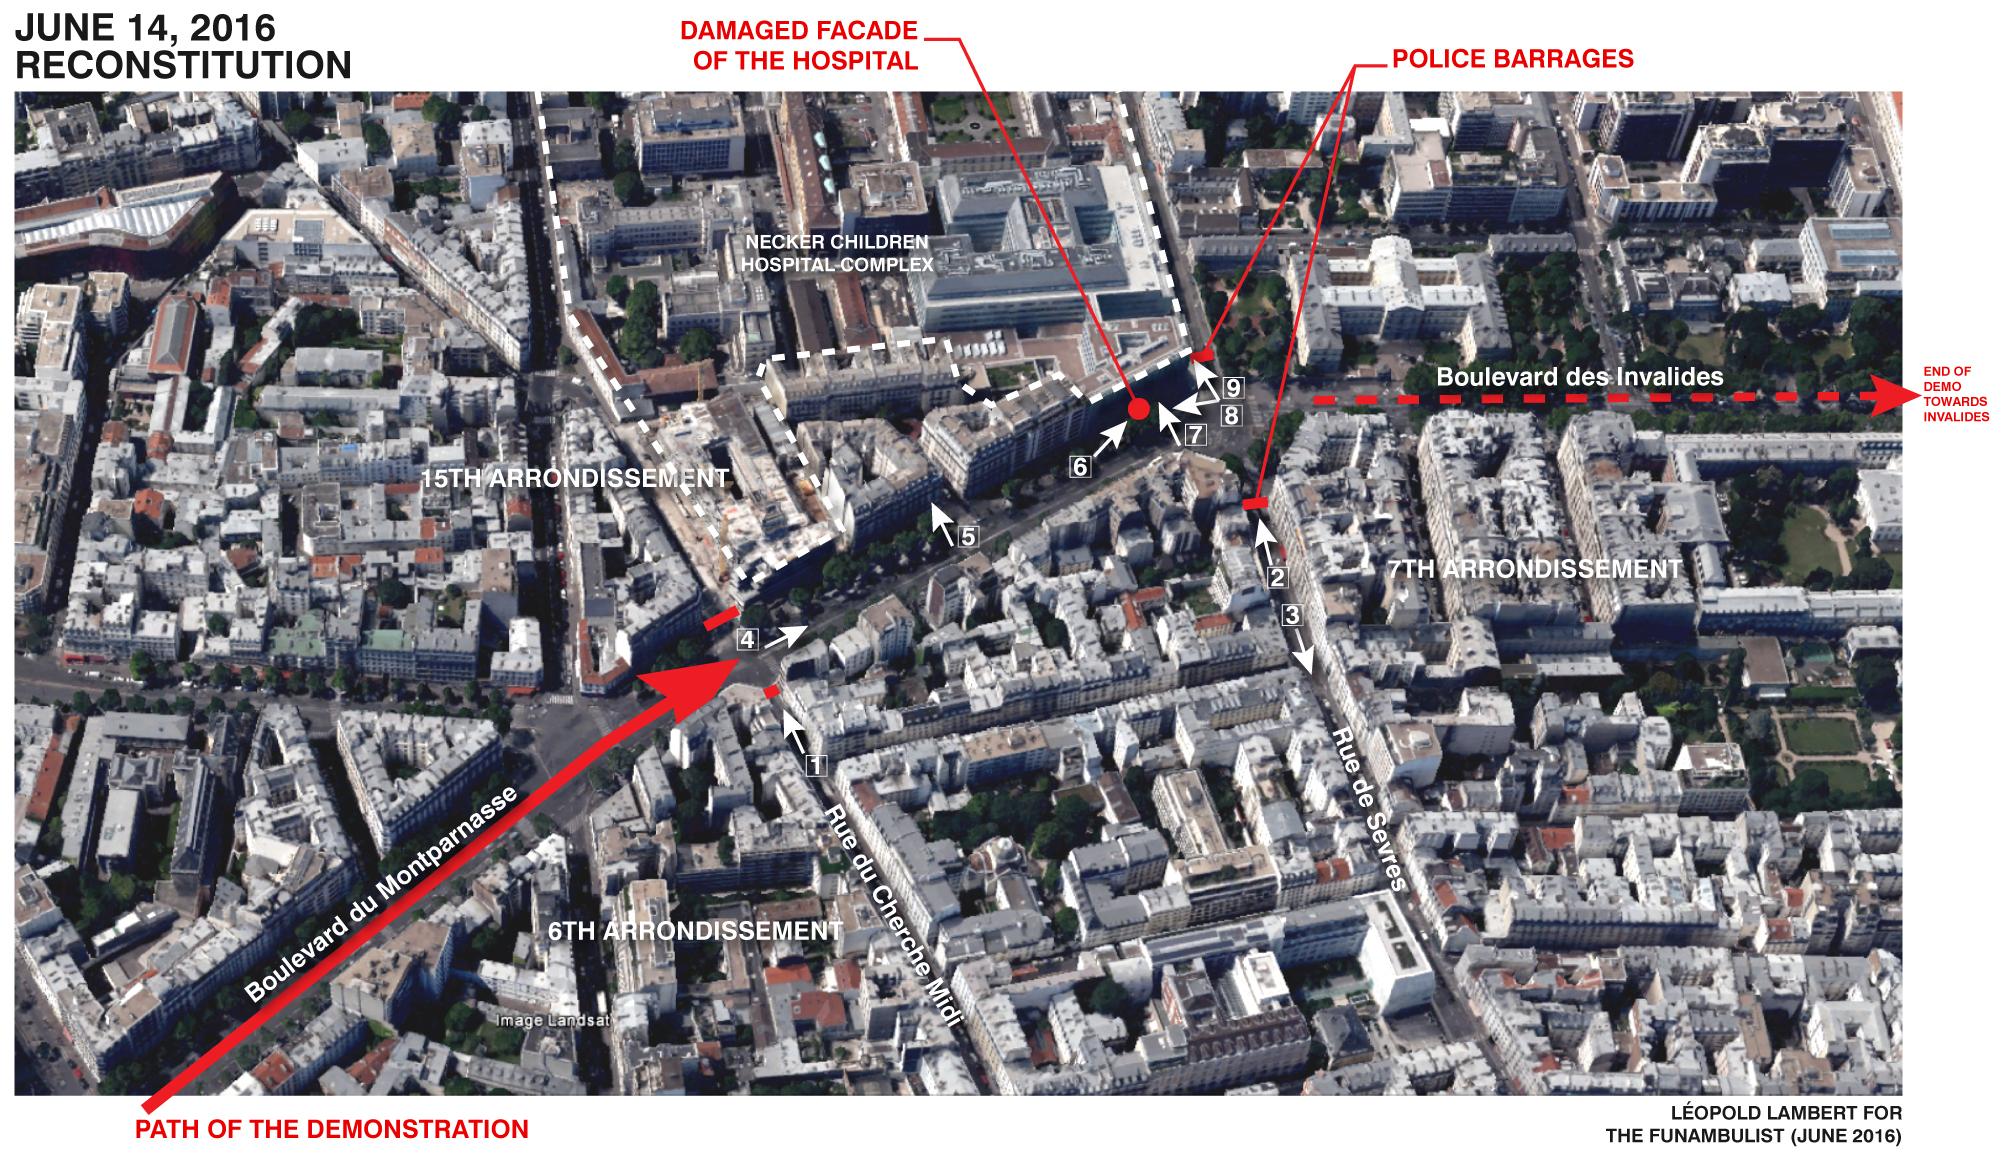 Map Funambulist June 14 Demo